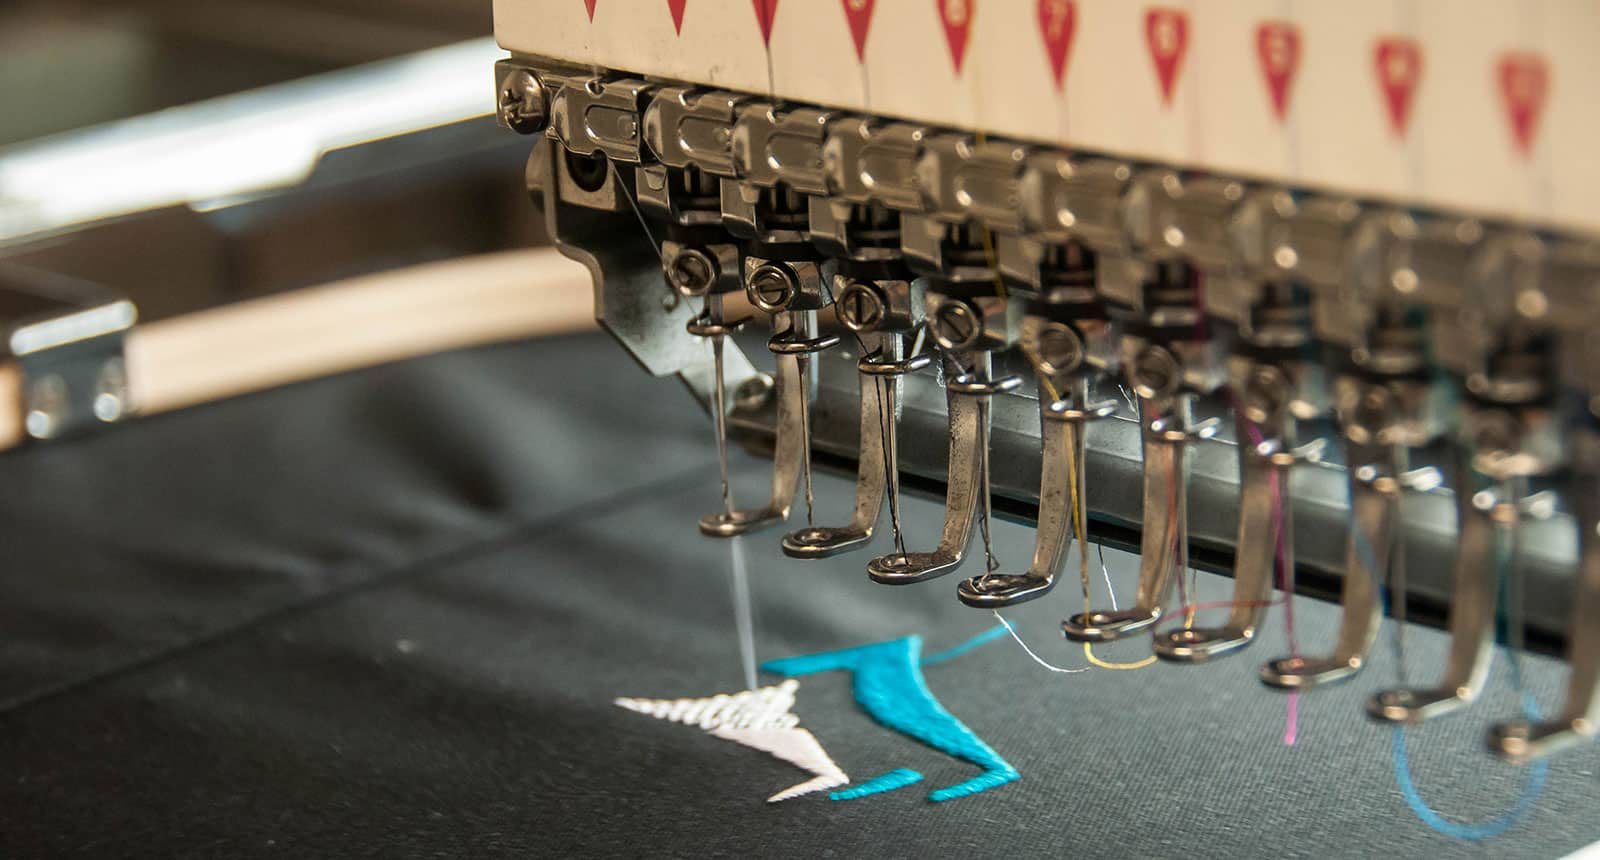 10 Best Embroidery Machines For Home